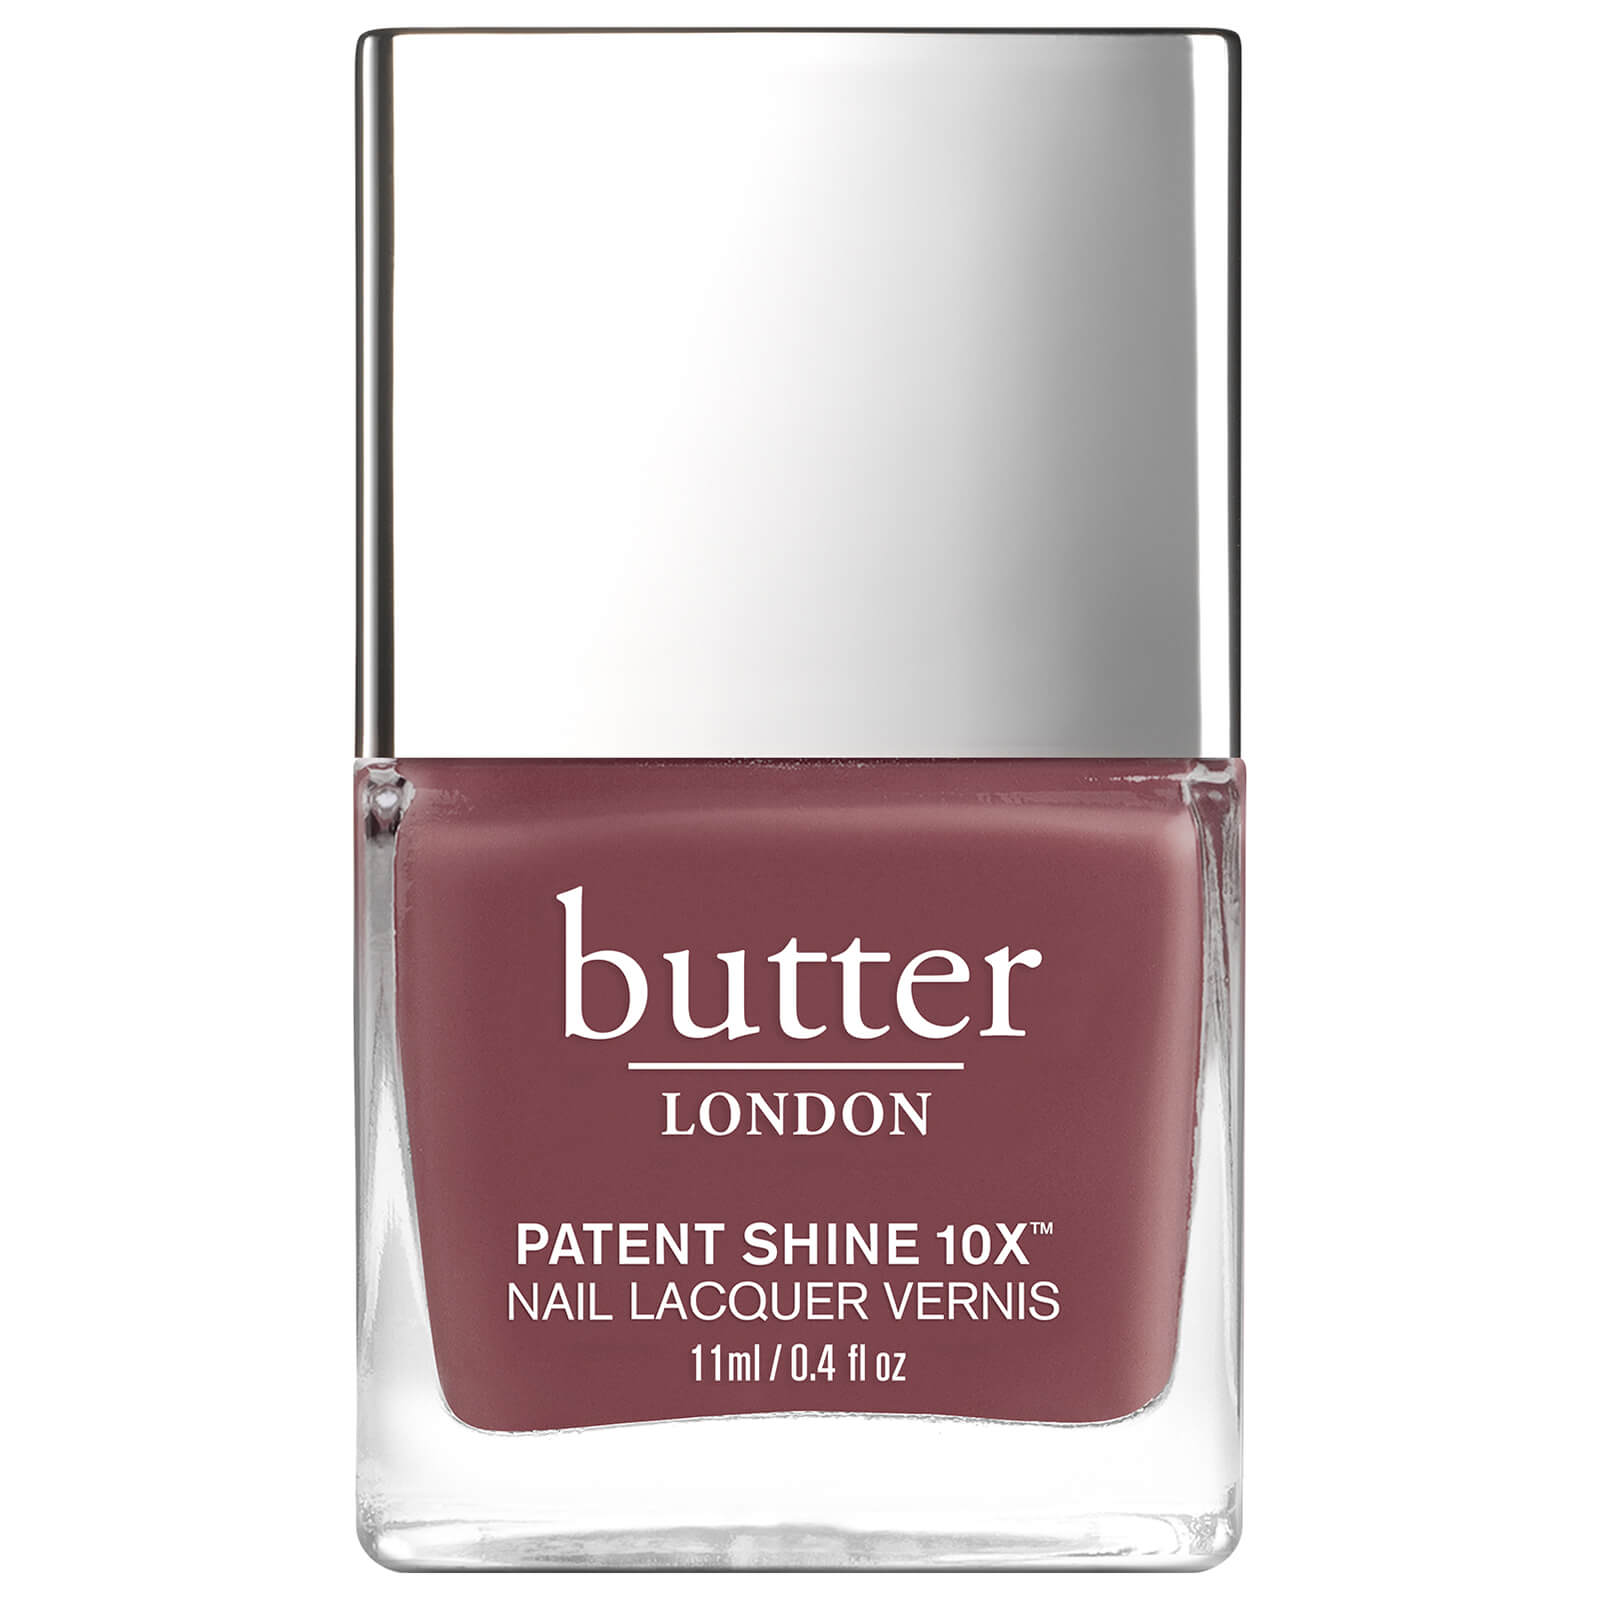 butter LONDON Patent Shine 10X Nail Lacquer 11ml - Toff | Free US ...